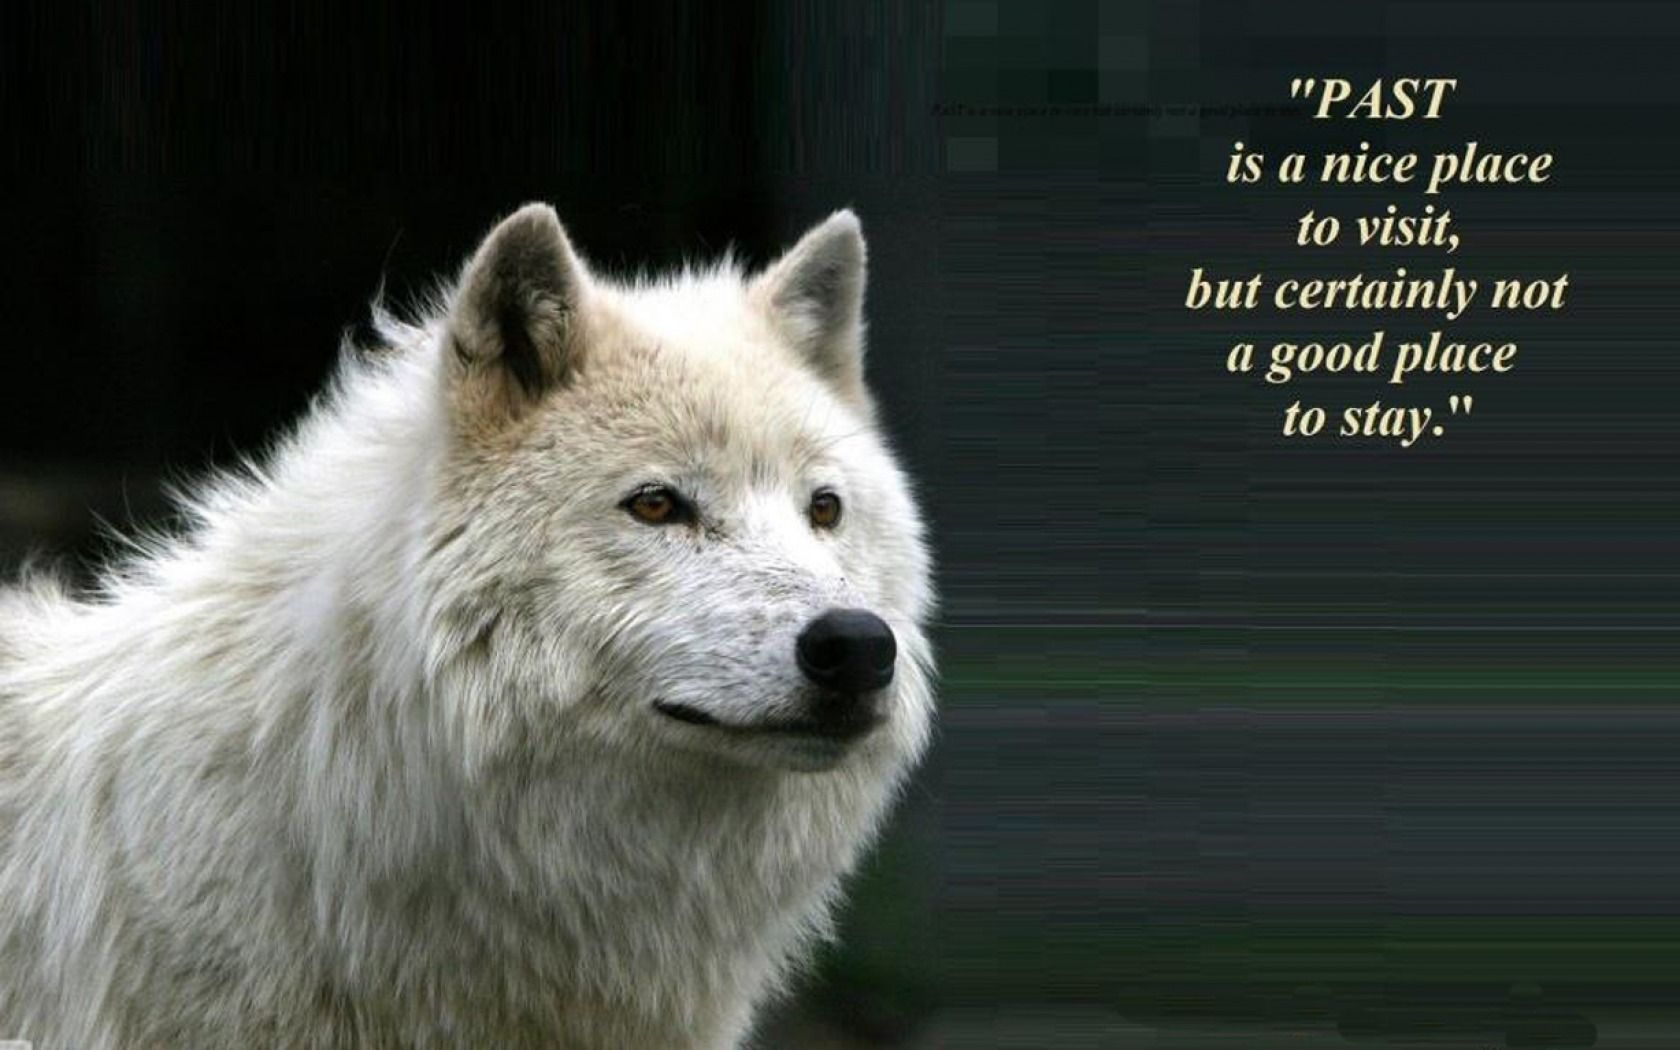 Download wallpaper id 1610409 desktop nexus animals - Animal pak motivational quotes ...